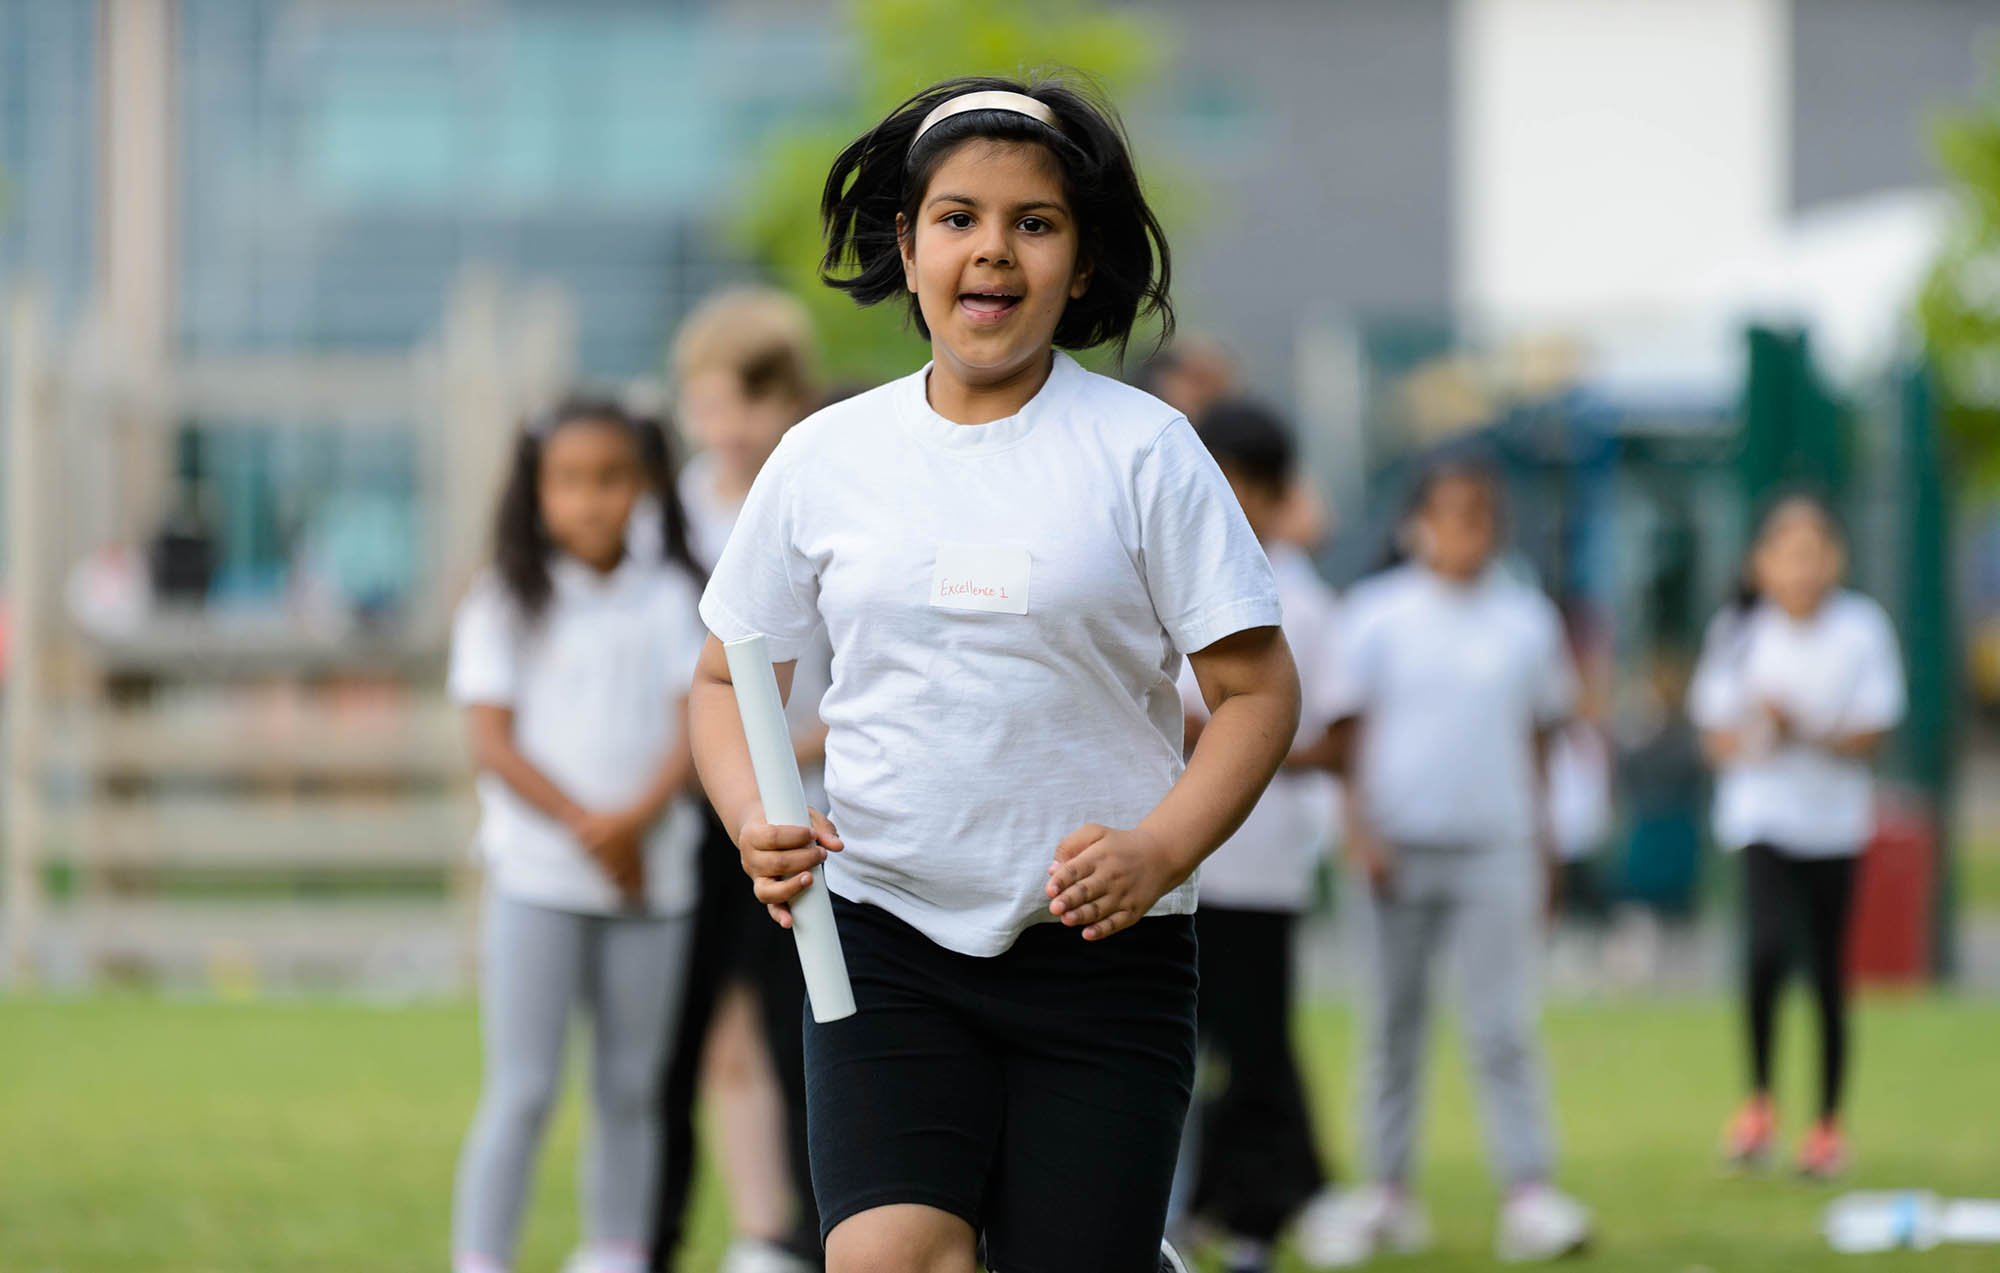 girl with relay baton running face on into camera